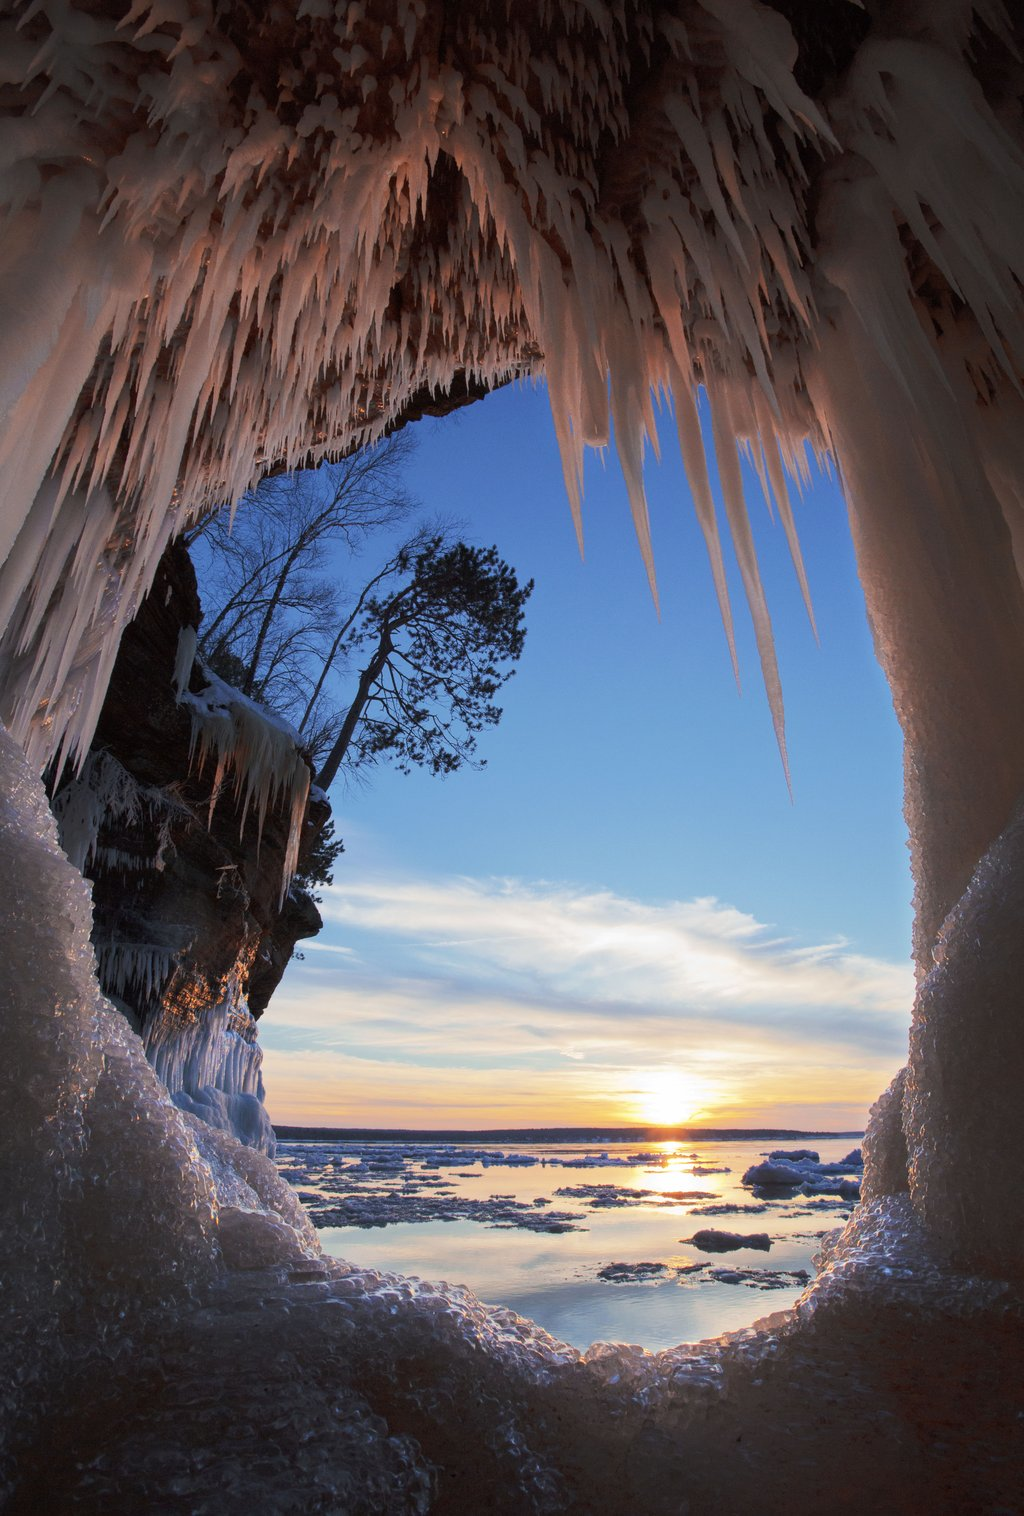 The ice caves at Apostle Islands, Wisconsin | Photography by ©Michael DeWitt https://t.co/oeWivZkNCZ